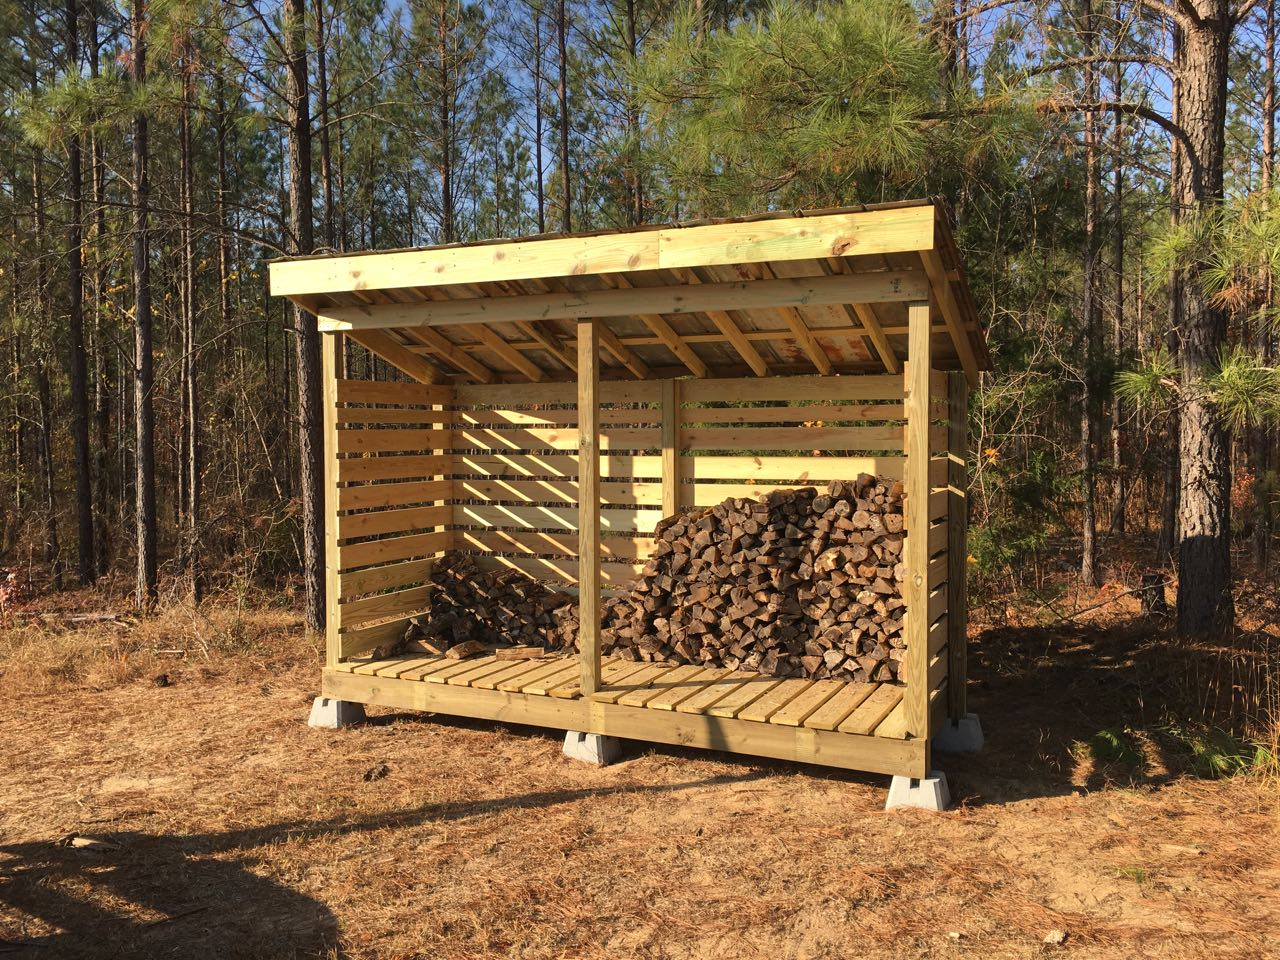 Fire wood shed | Deer Hunter Forum